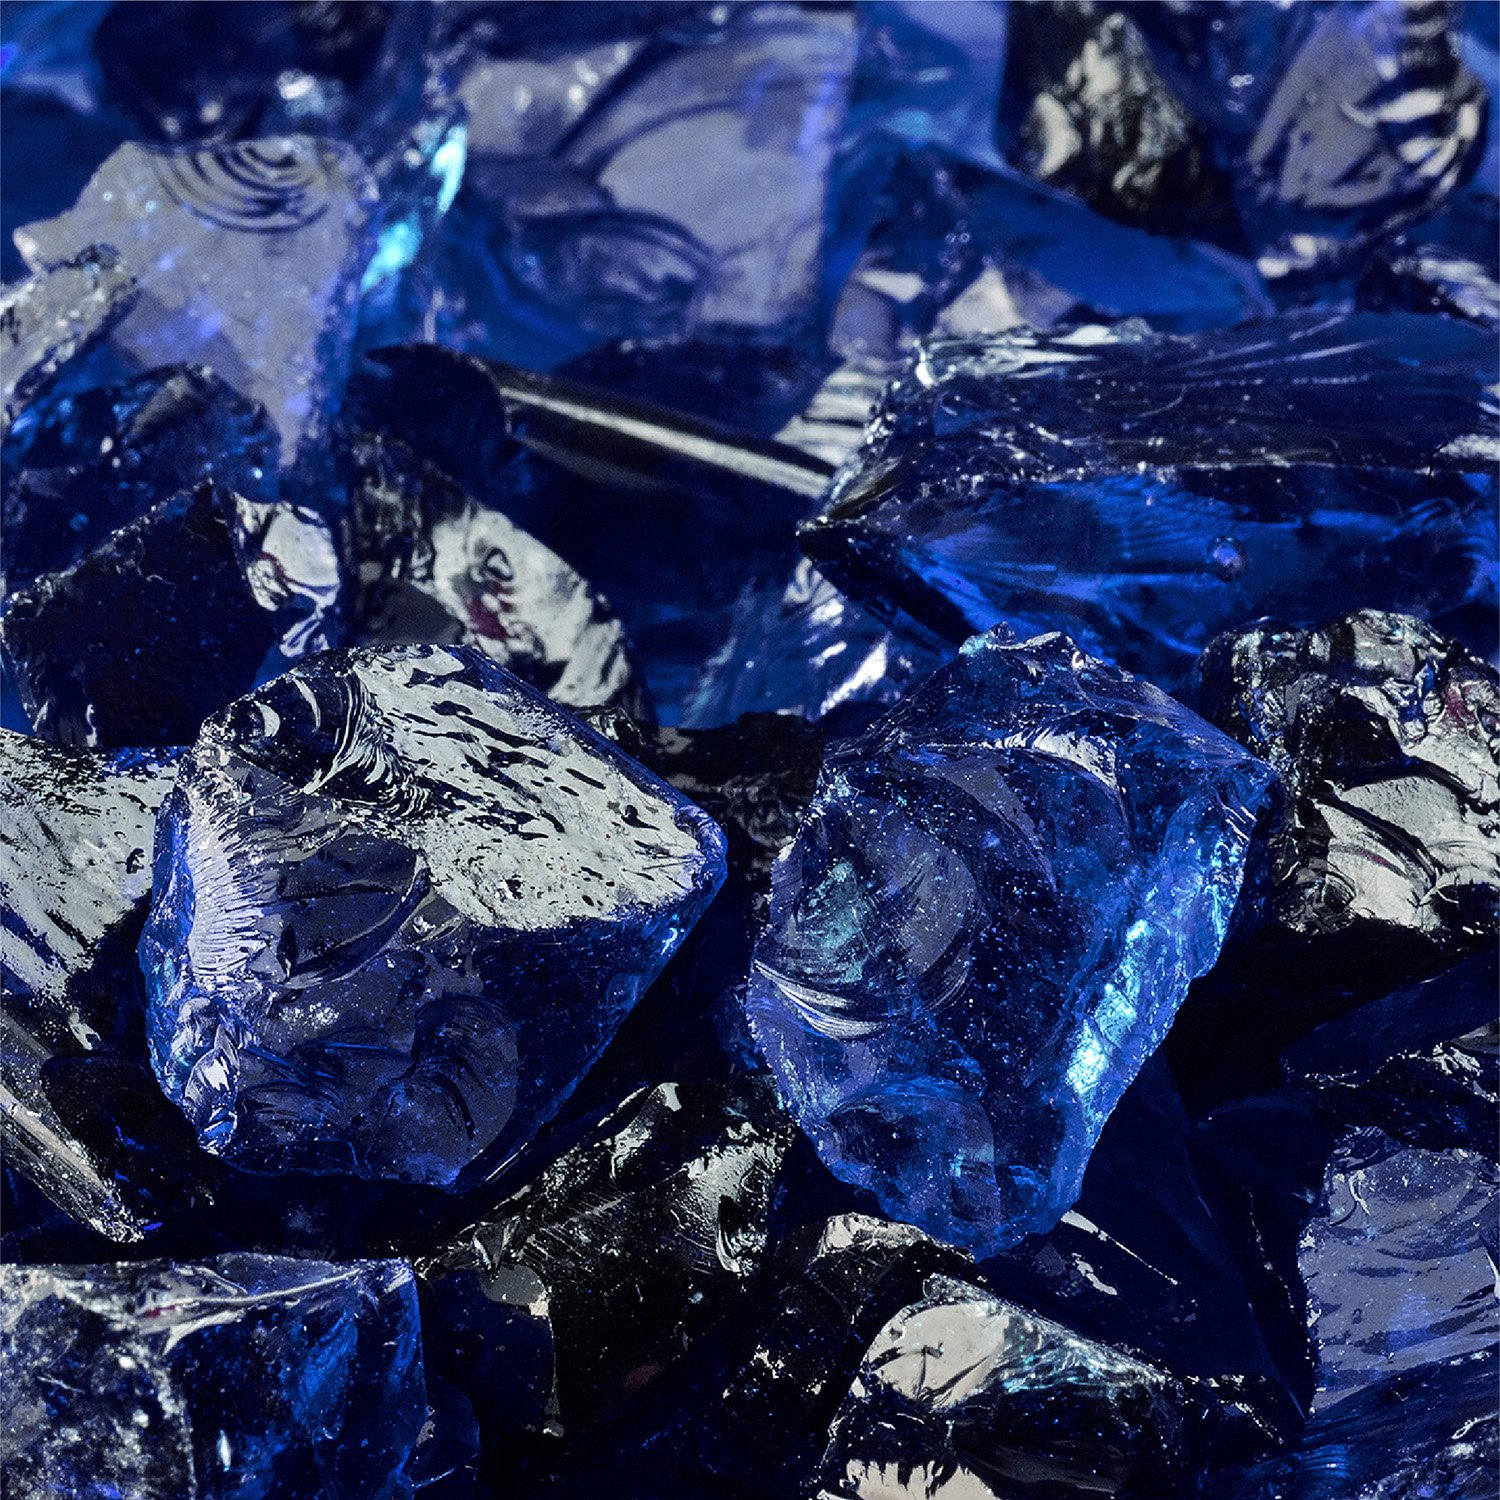 Deep Sea Blue - Crushed Fire Glass for Indoor and Outdoor Fire Pits or Fireplaces | 10 Pounds | 1/2 Inch - 3/4 Inch